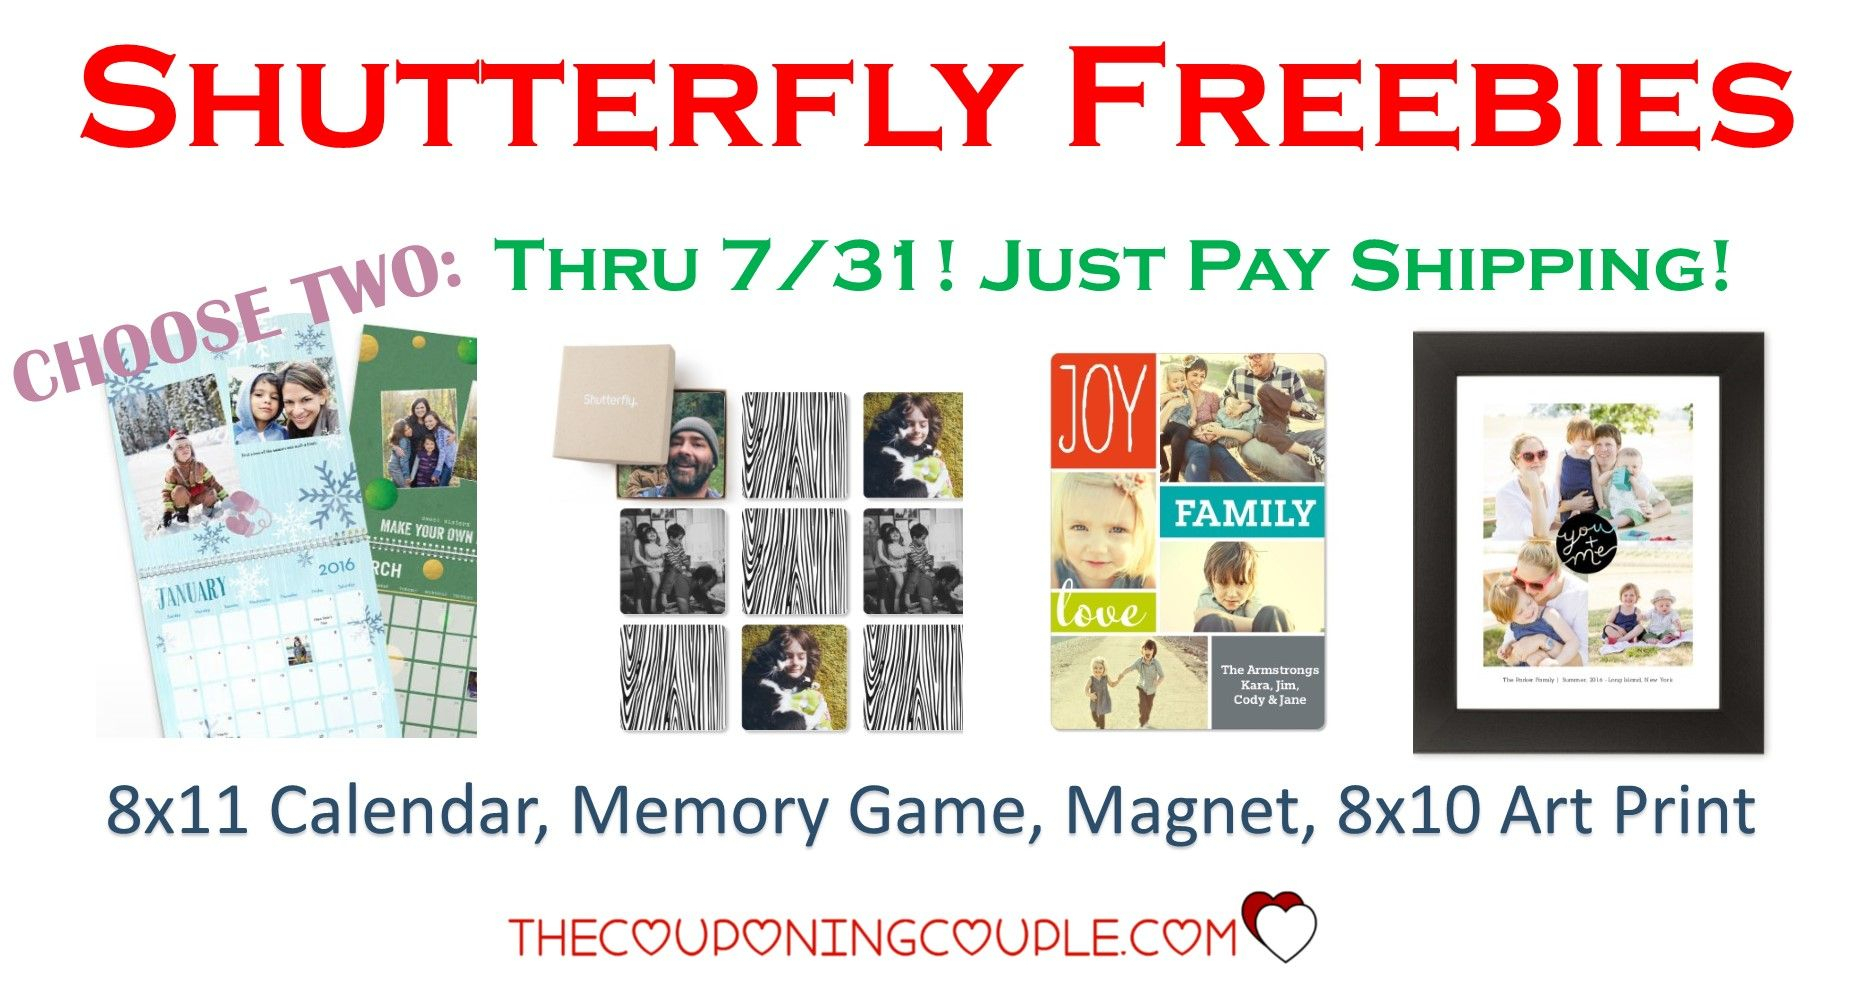 Shutterfly Freebies: Free Address Labels! Just Pay Shipping